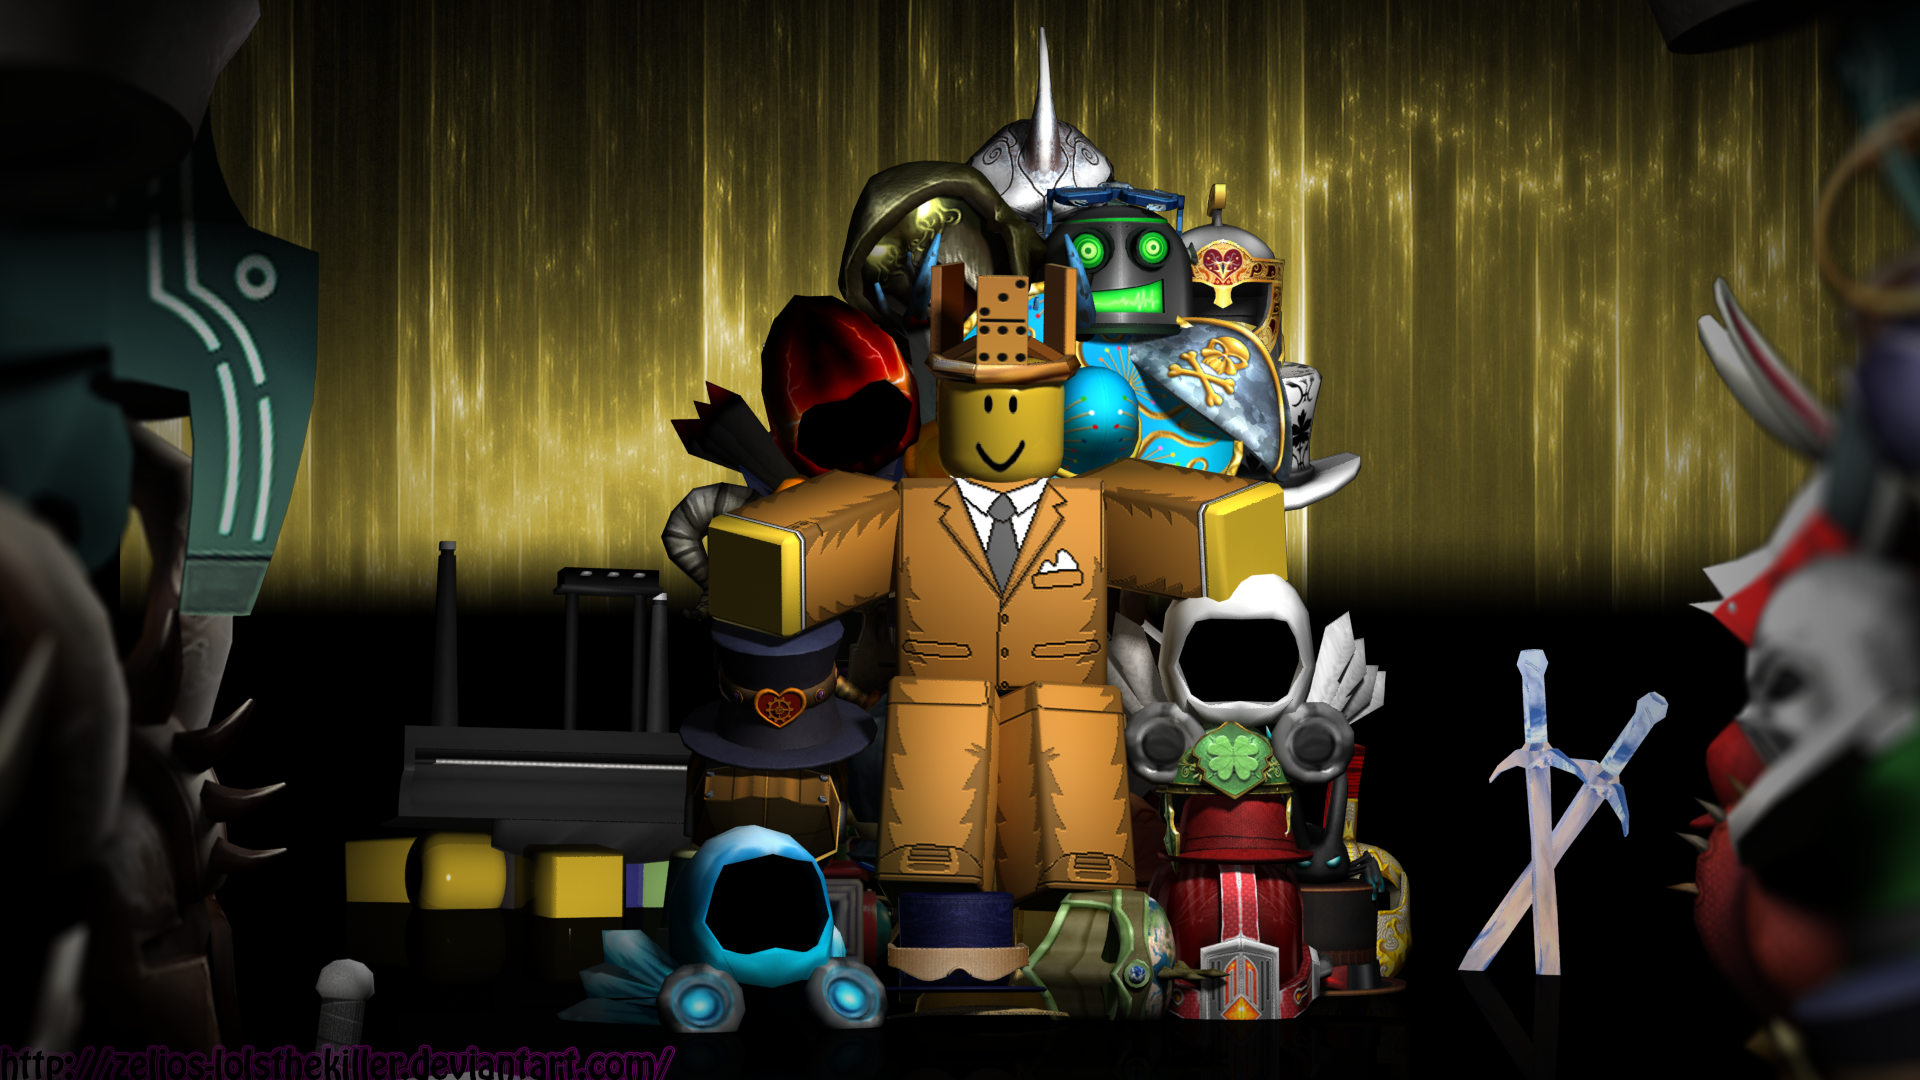 Roblox Wallpaper 2014 A background of my roblox 1920x1080